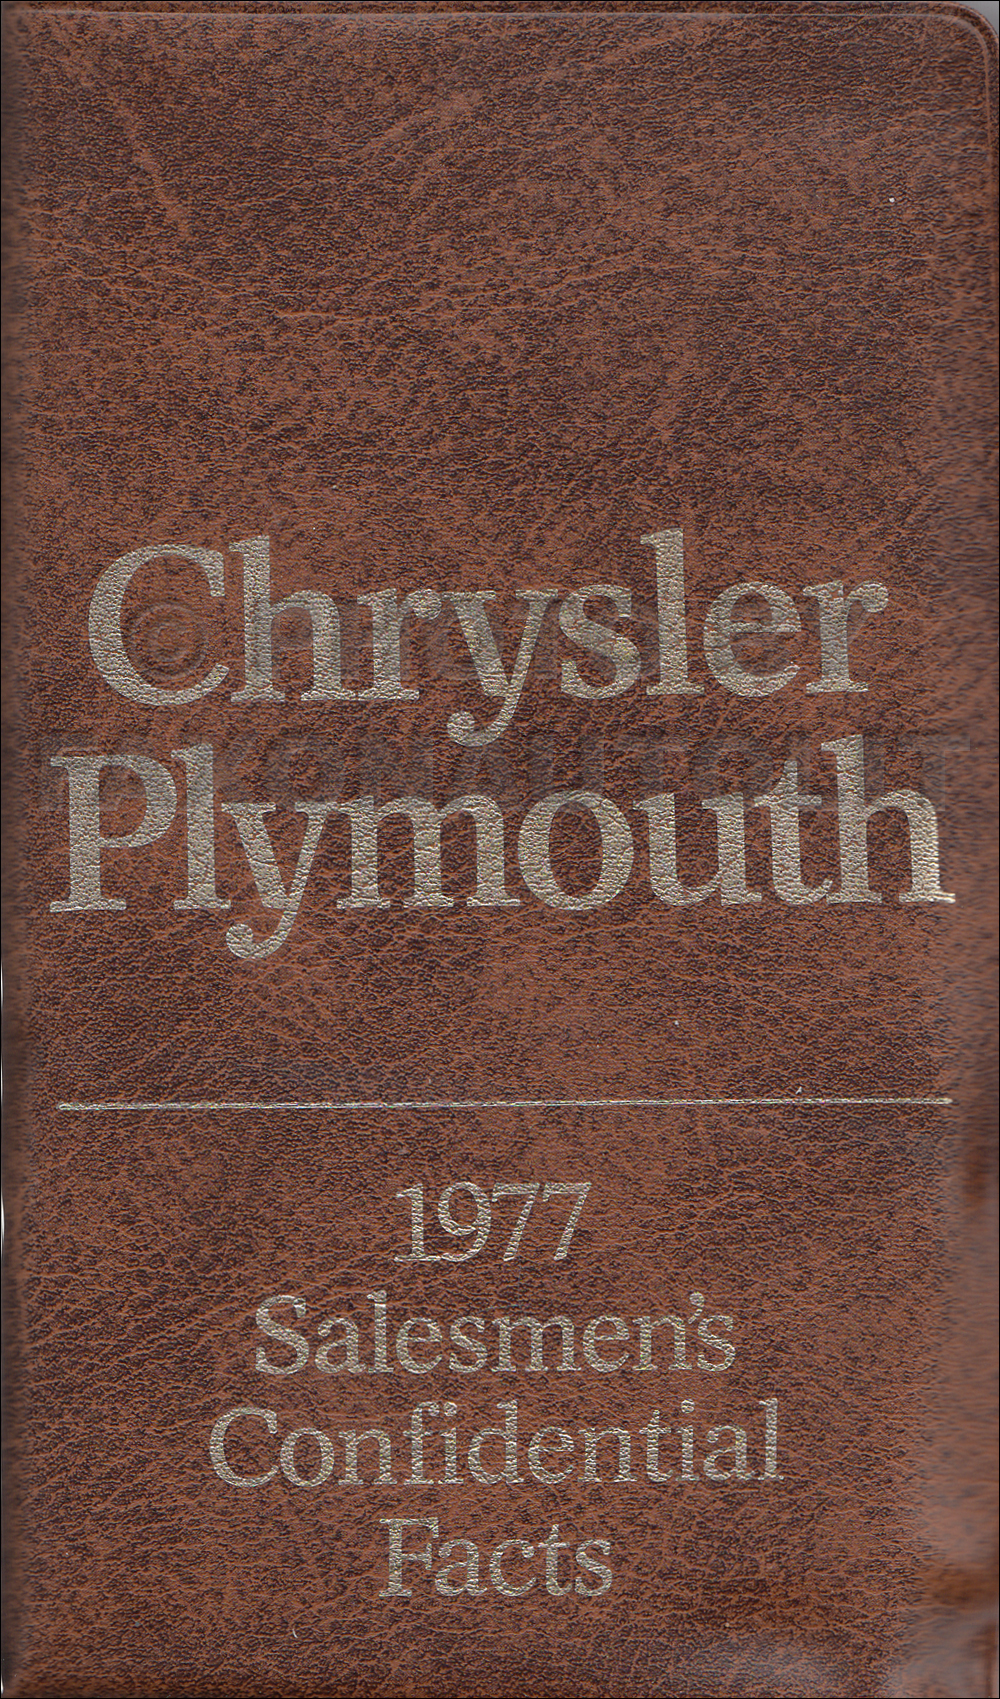 1977 Chrysler Plymouth Pocket Size Salesmen's Confidential Facts Guide Original